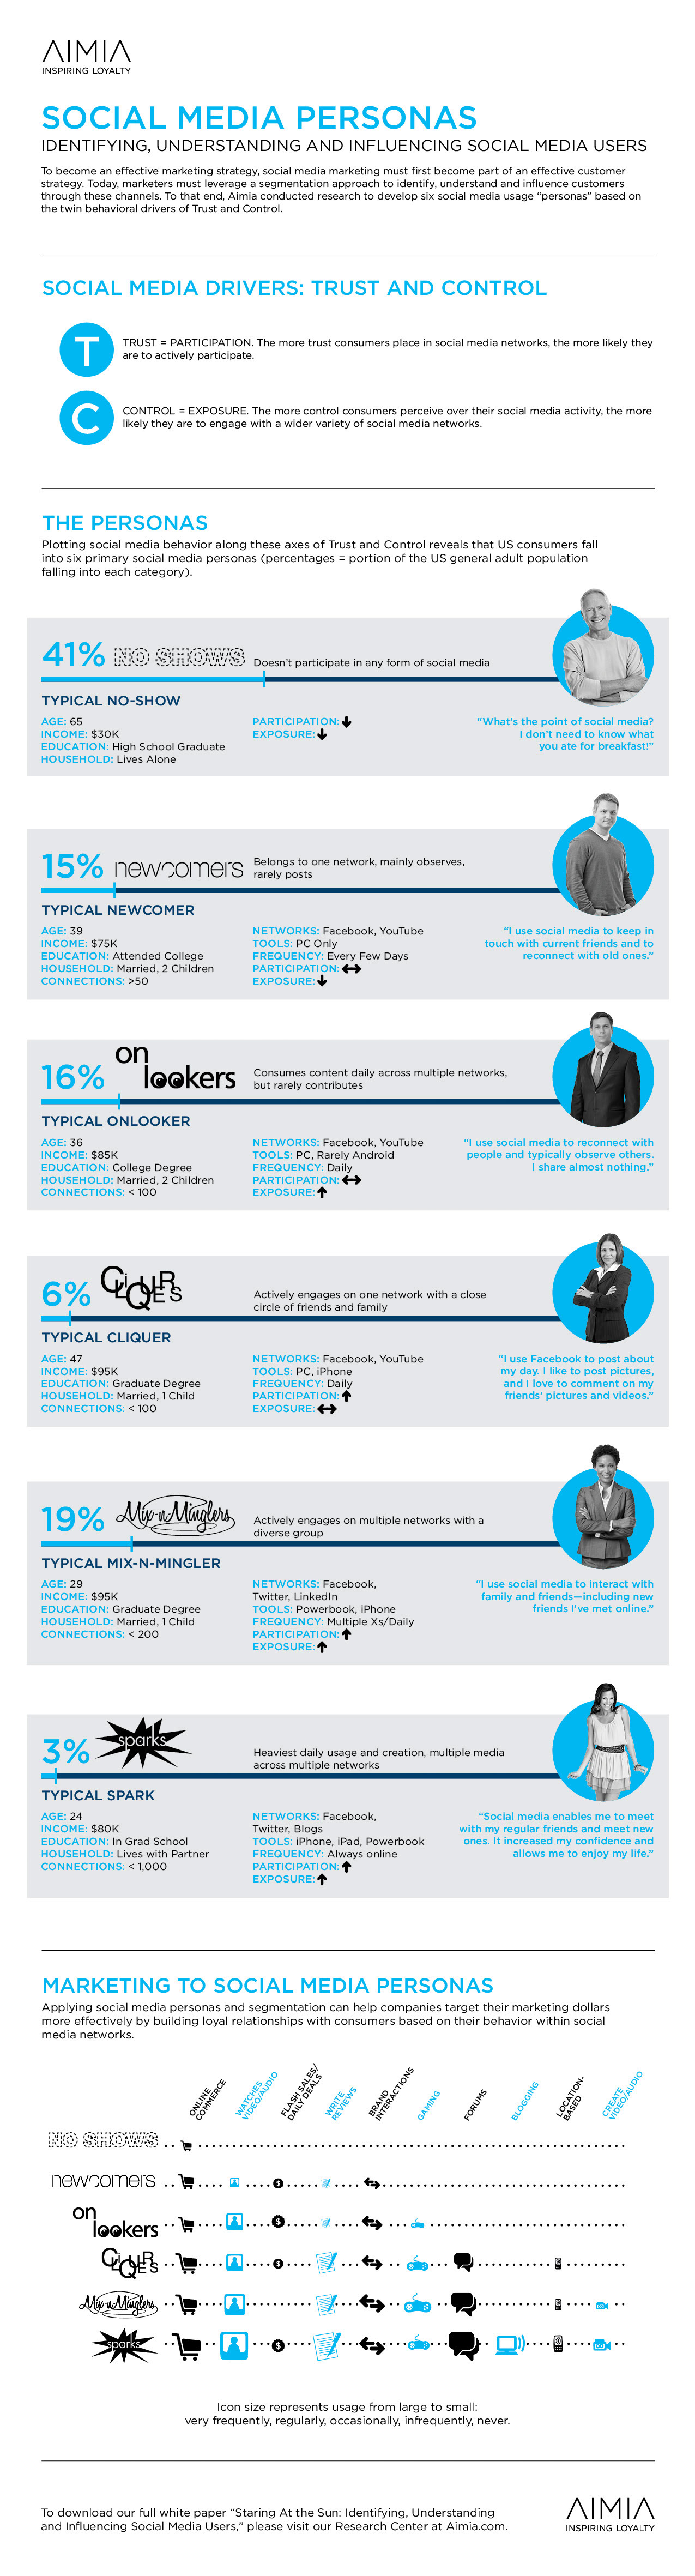 Social-Media-Personas-infographic